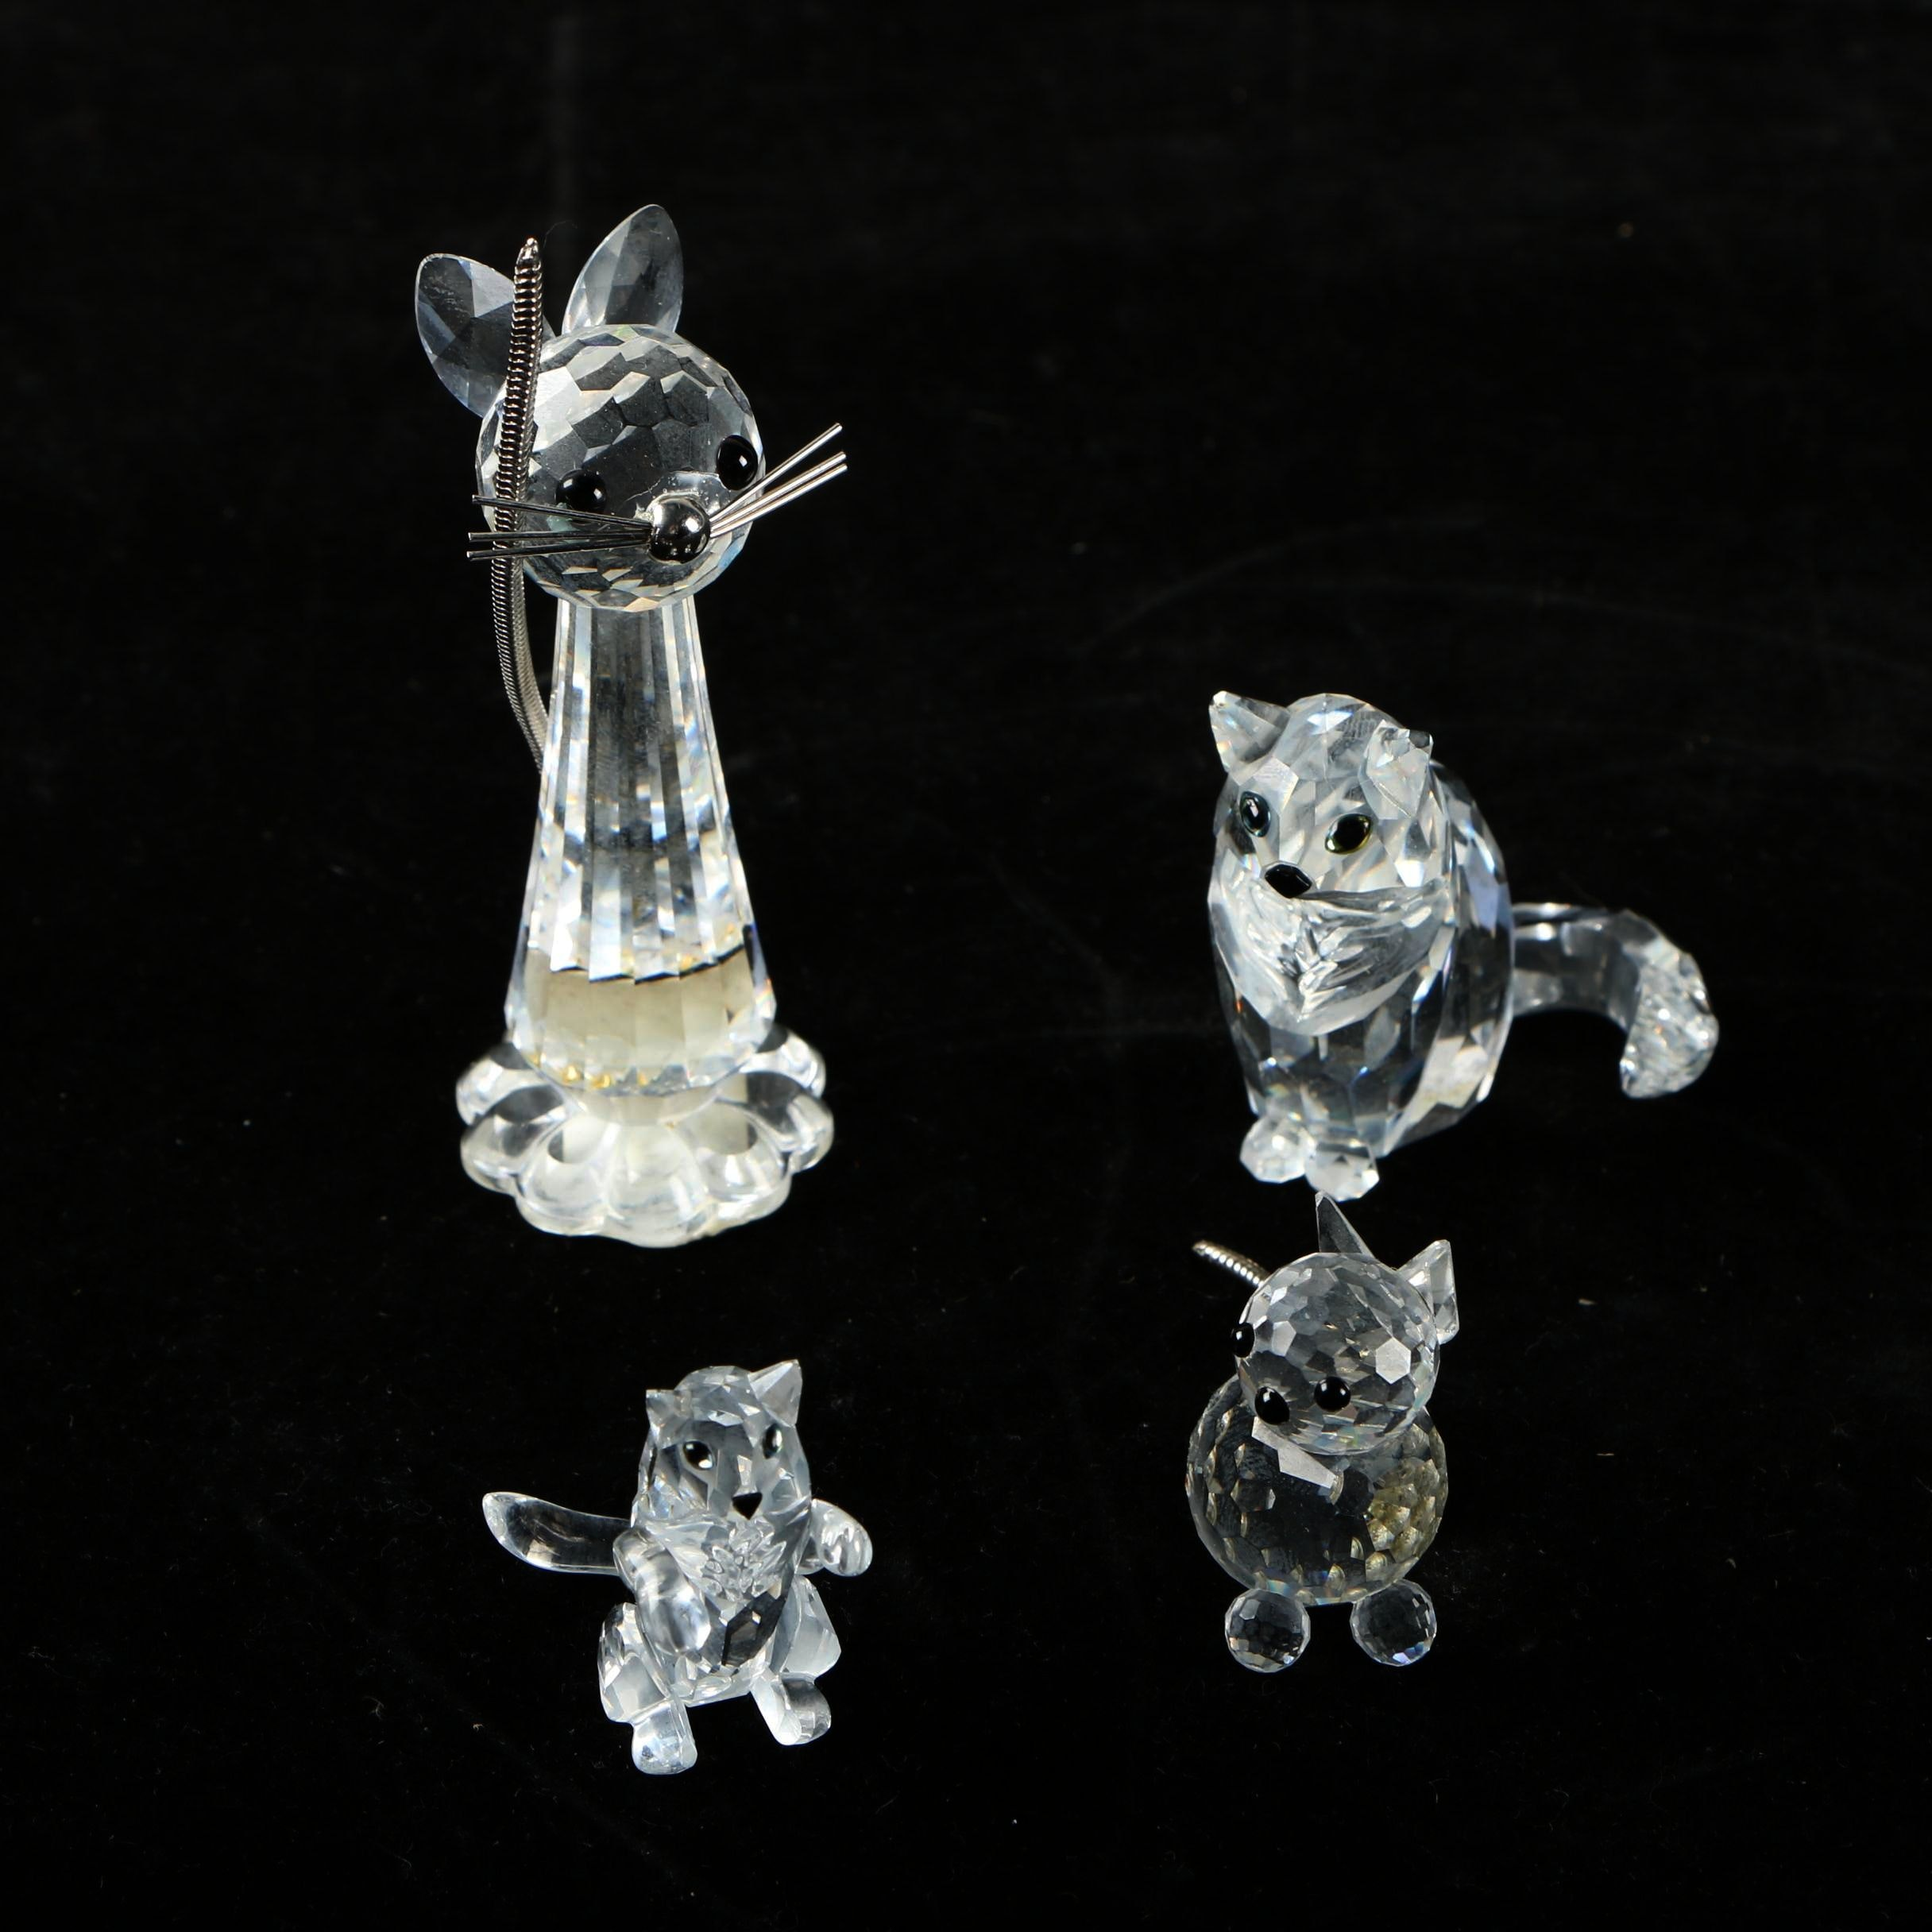 Swarovski Crystal Cat Figures